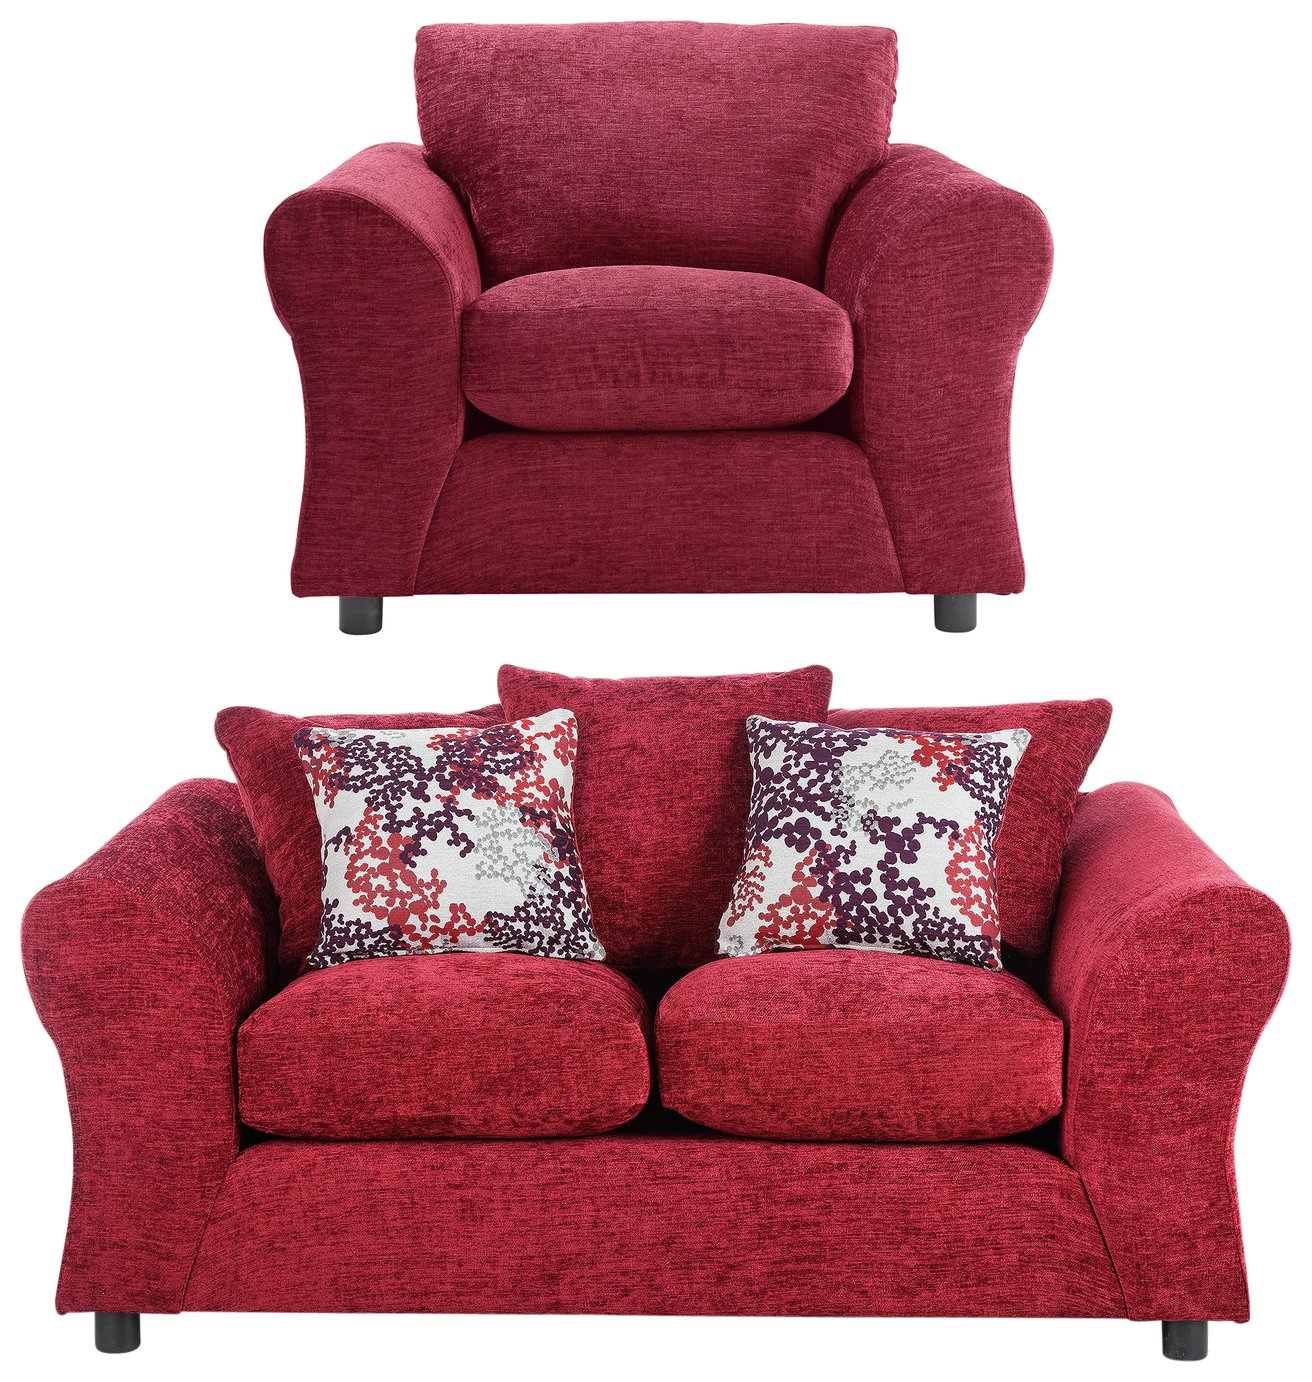 HOME New Clara Fabric 2 Seater Sofa & Chair - Red